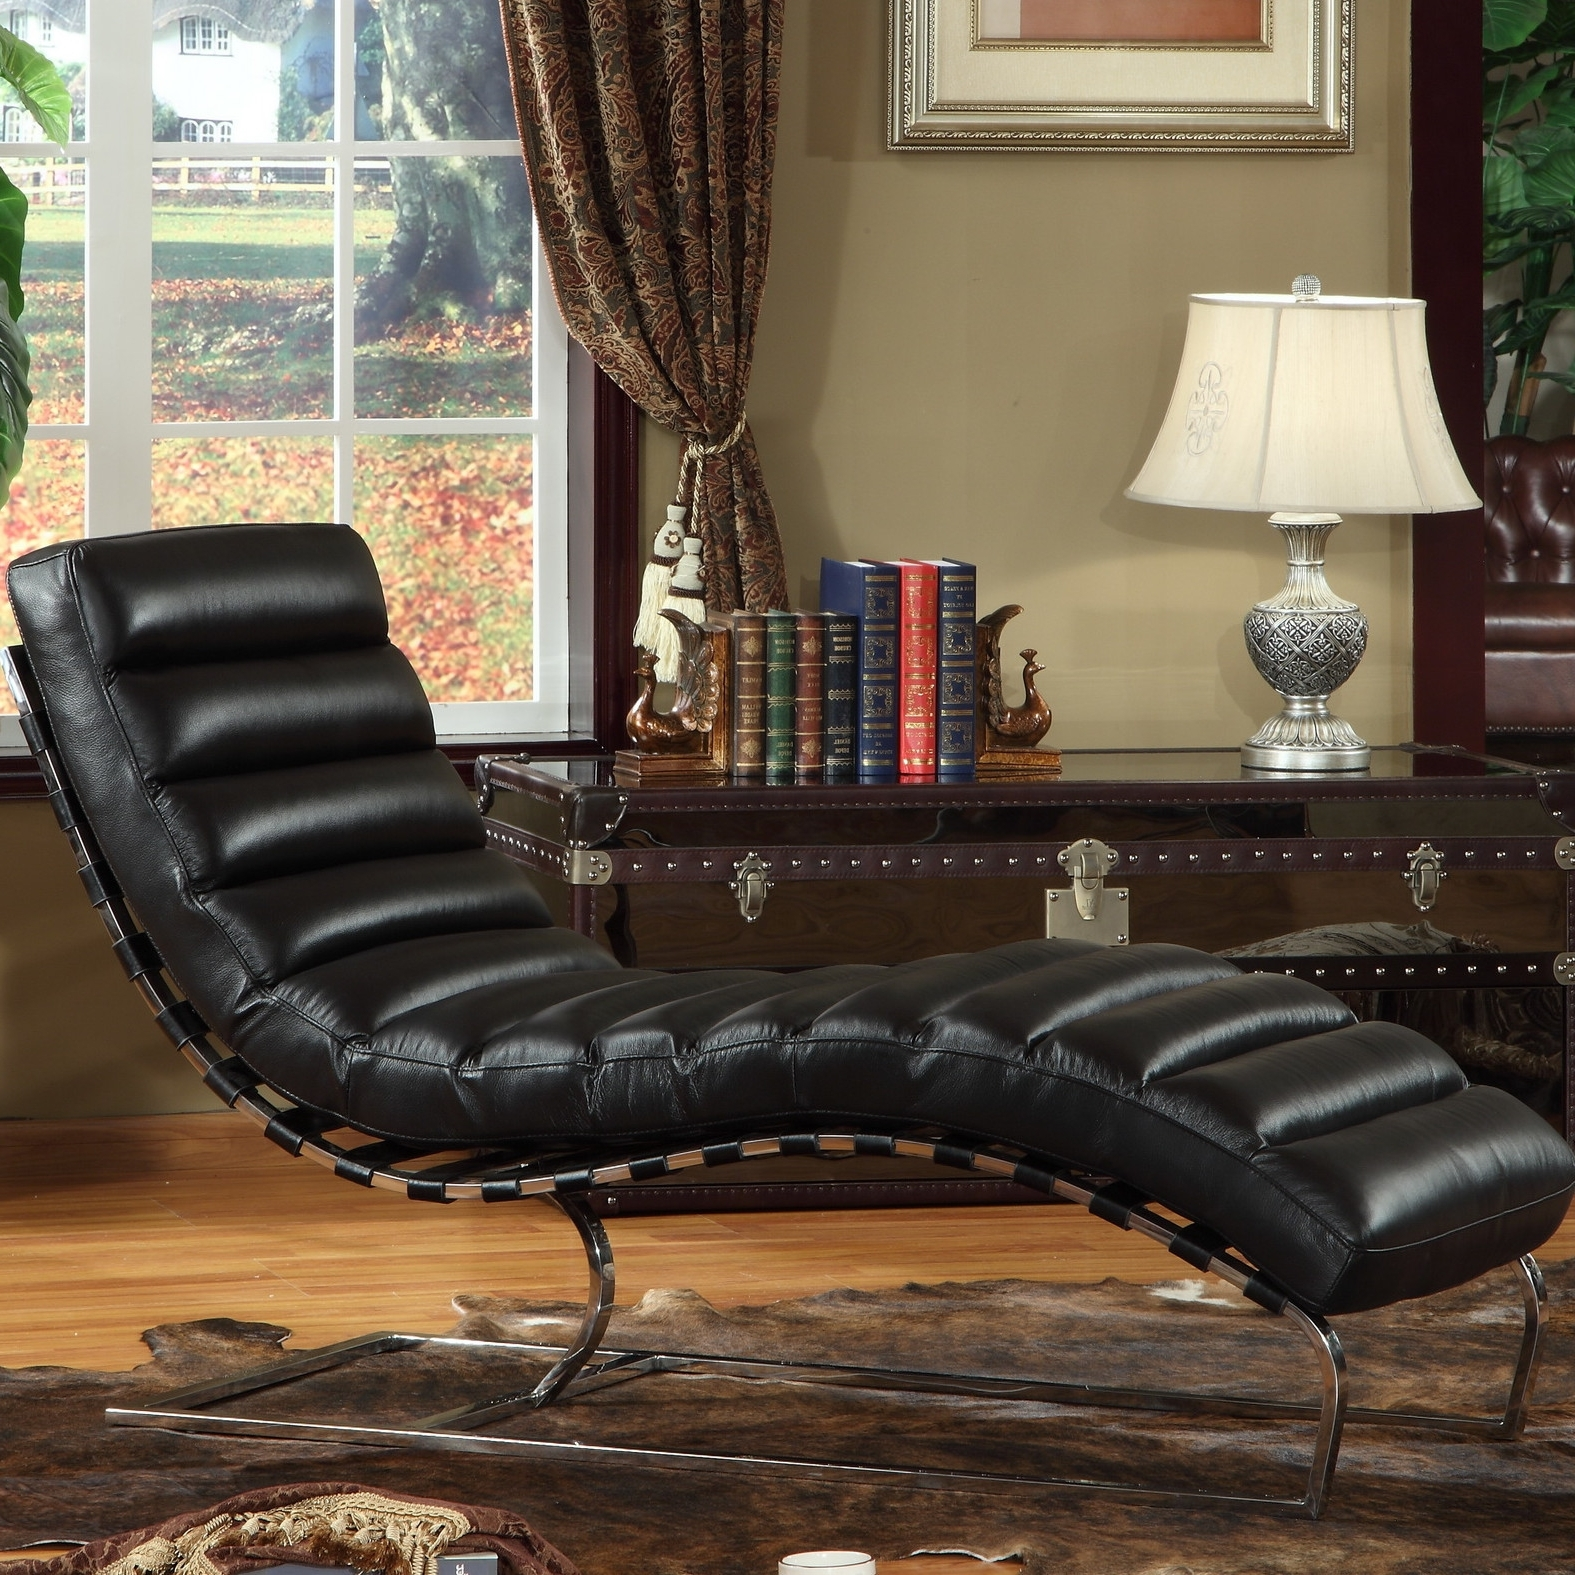 Beautiful Leather Chaise Lounge Chair — Lustwithalaugh Design Intended For Preferred Leather Chaise Lounge Chairs (View 2 of 15)